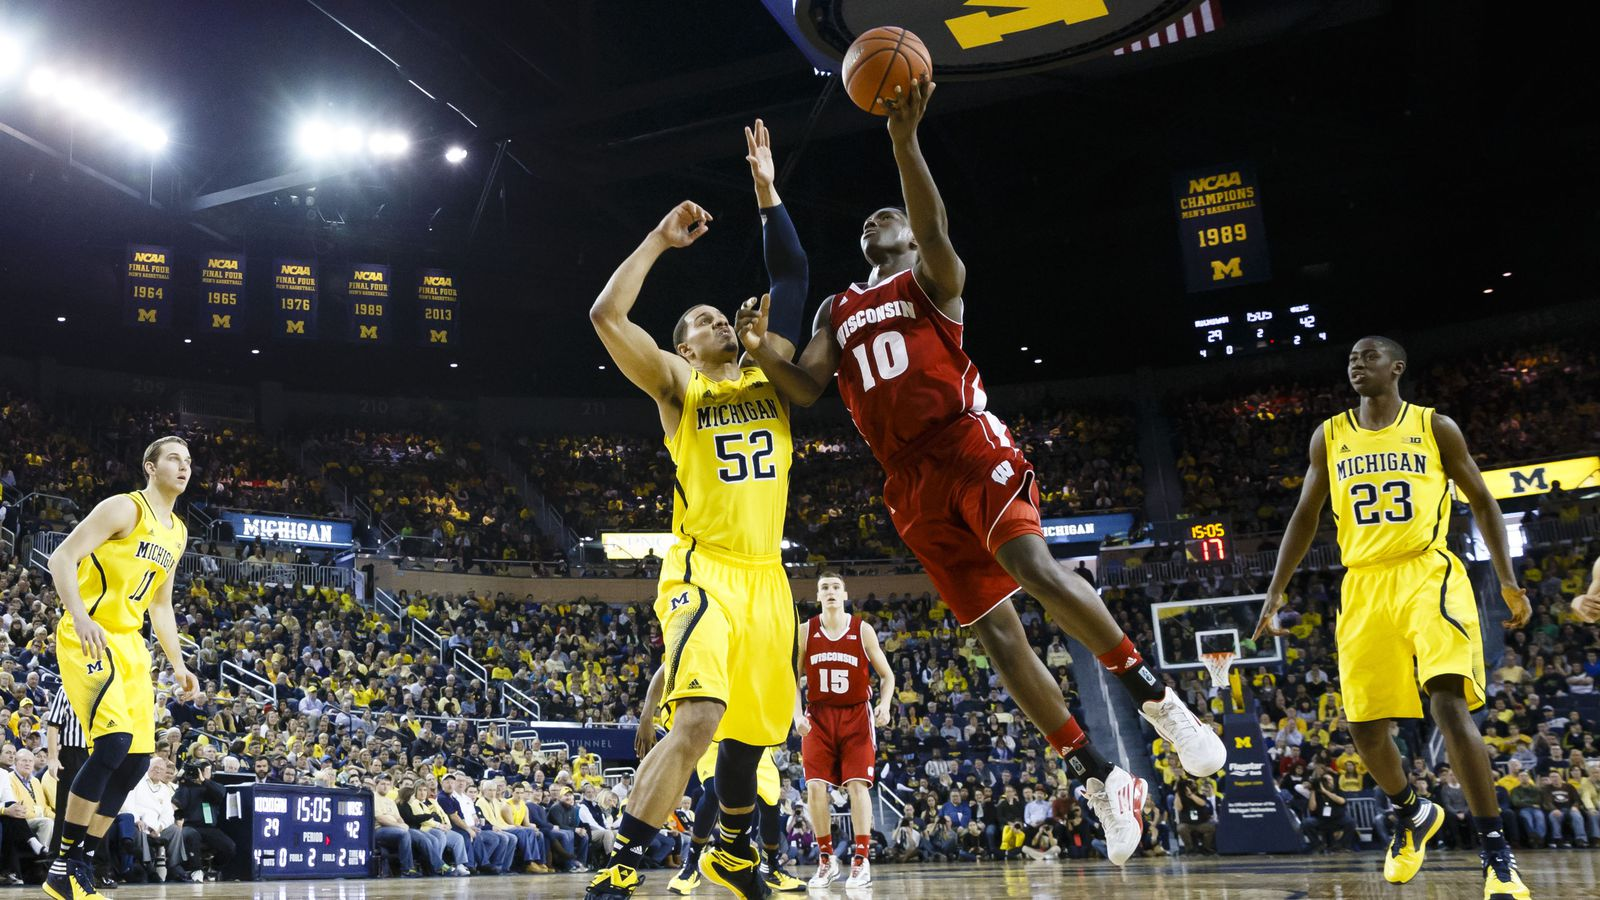 College basketball rankings: Wisconsin continues climb in AP Top 25, Coaches Polls - Bucky's 5th ...